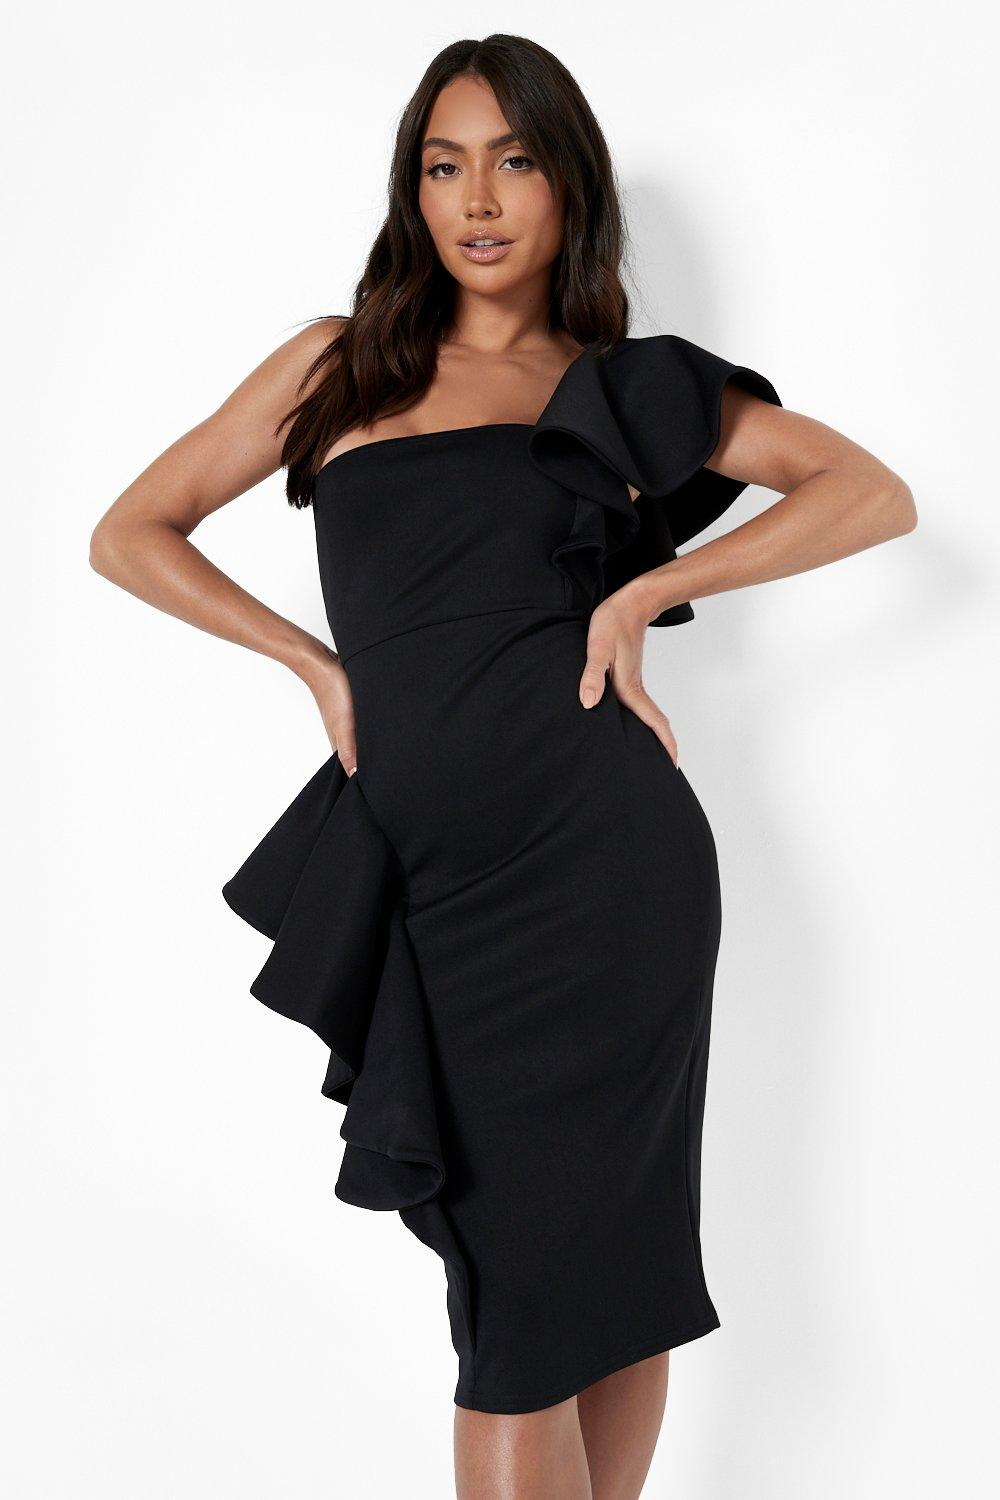 1980s Clothing, Fashion | 80s Style Clothes Womens One Shoulder Extreme Ruffle Detail Midi Dress - Black - 14 $50.00 AT vintagedancer.com